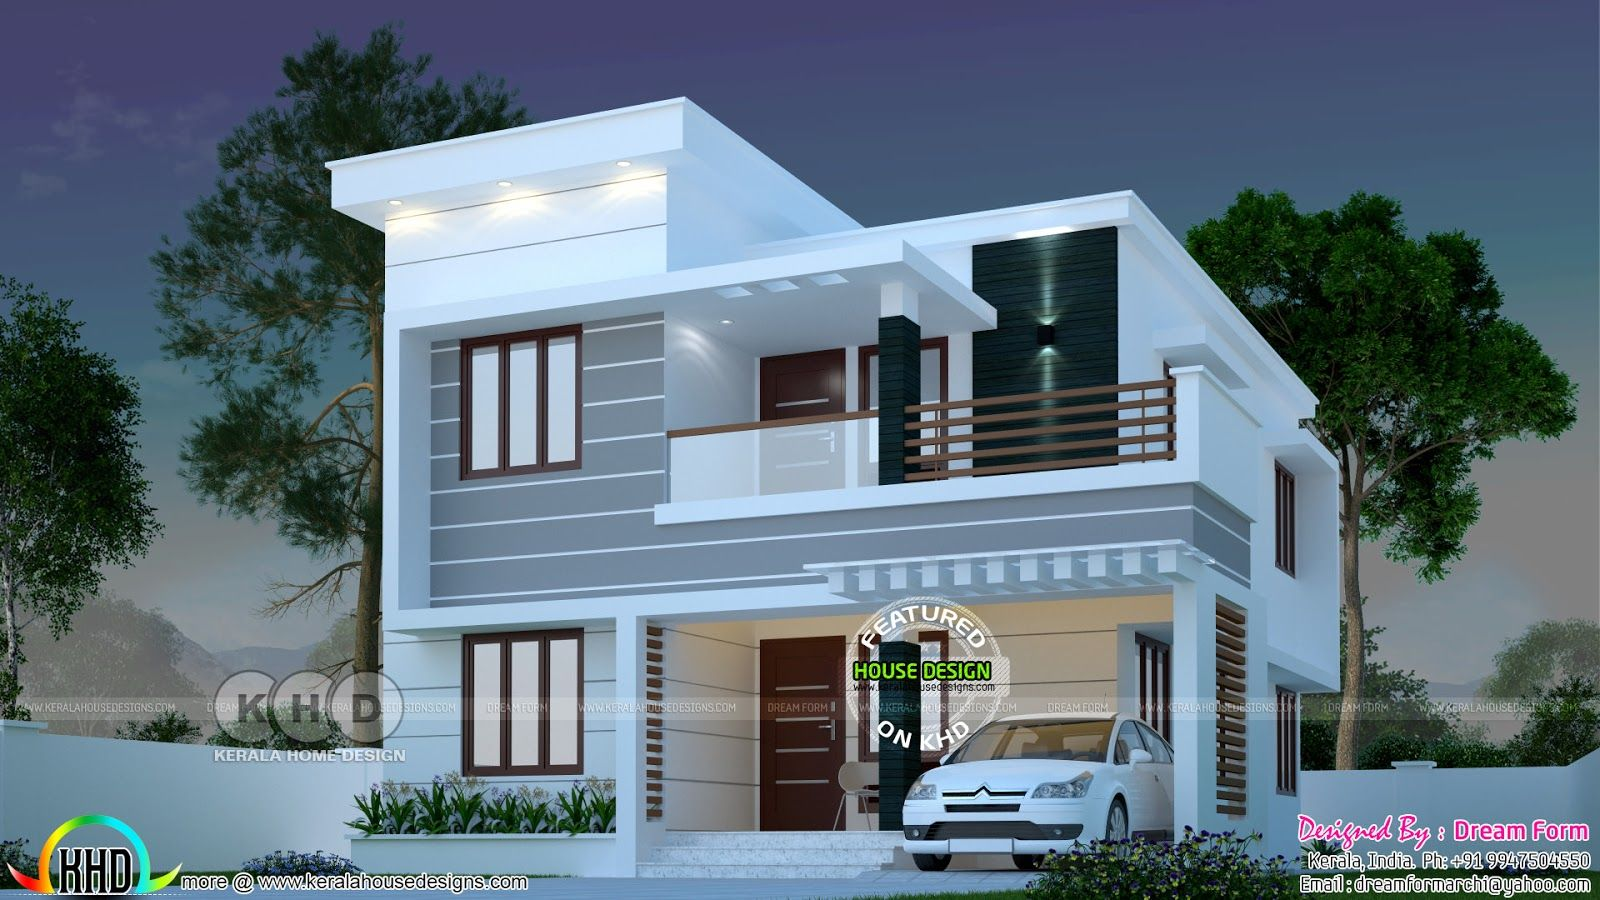 1145 sq ft 3 bedroom modern kerala house